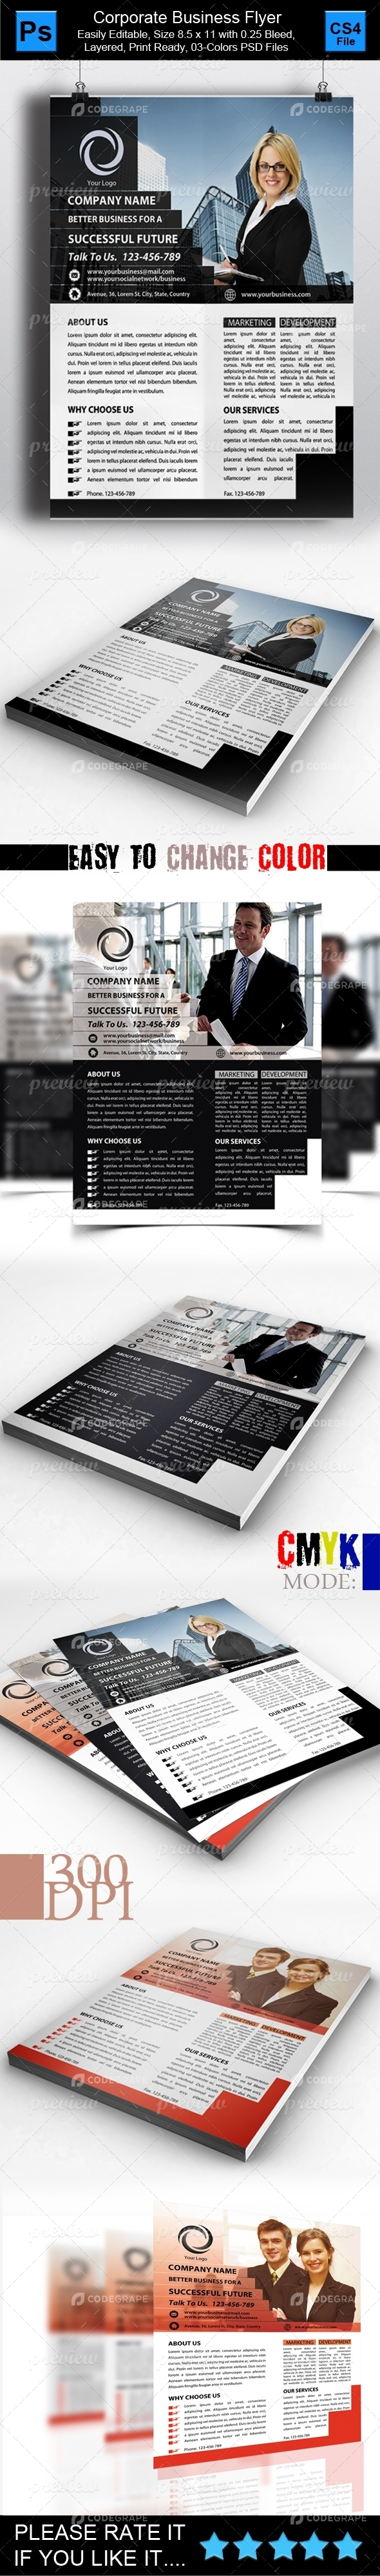 Corporate Business Flyer 2